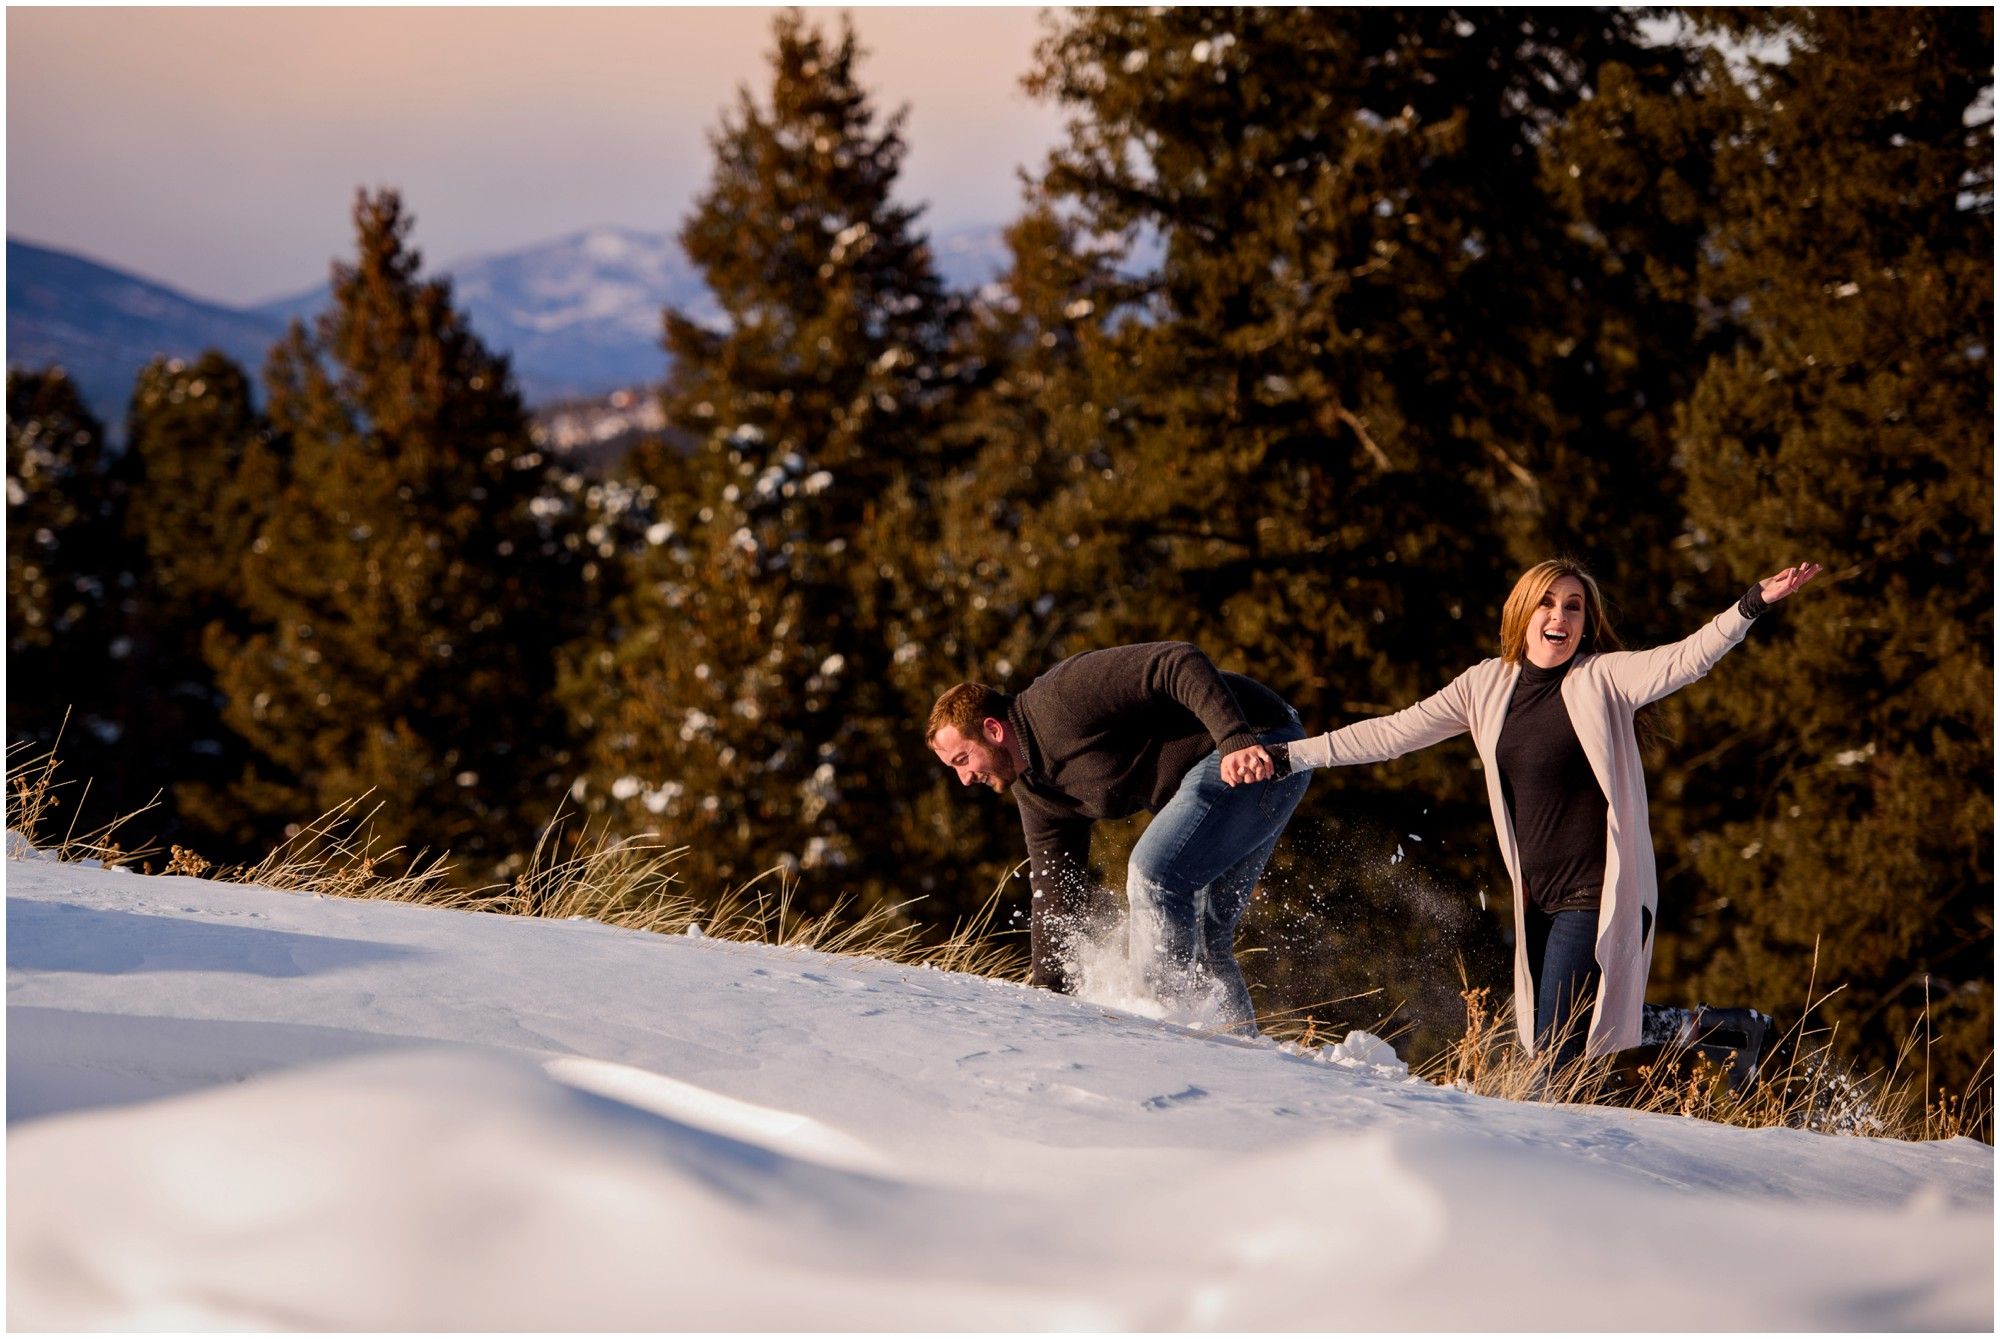 71-Evergreen-Colorado-winter-engagement-photography.jpg